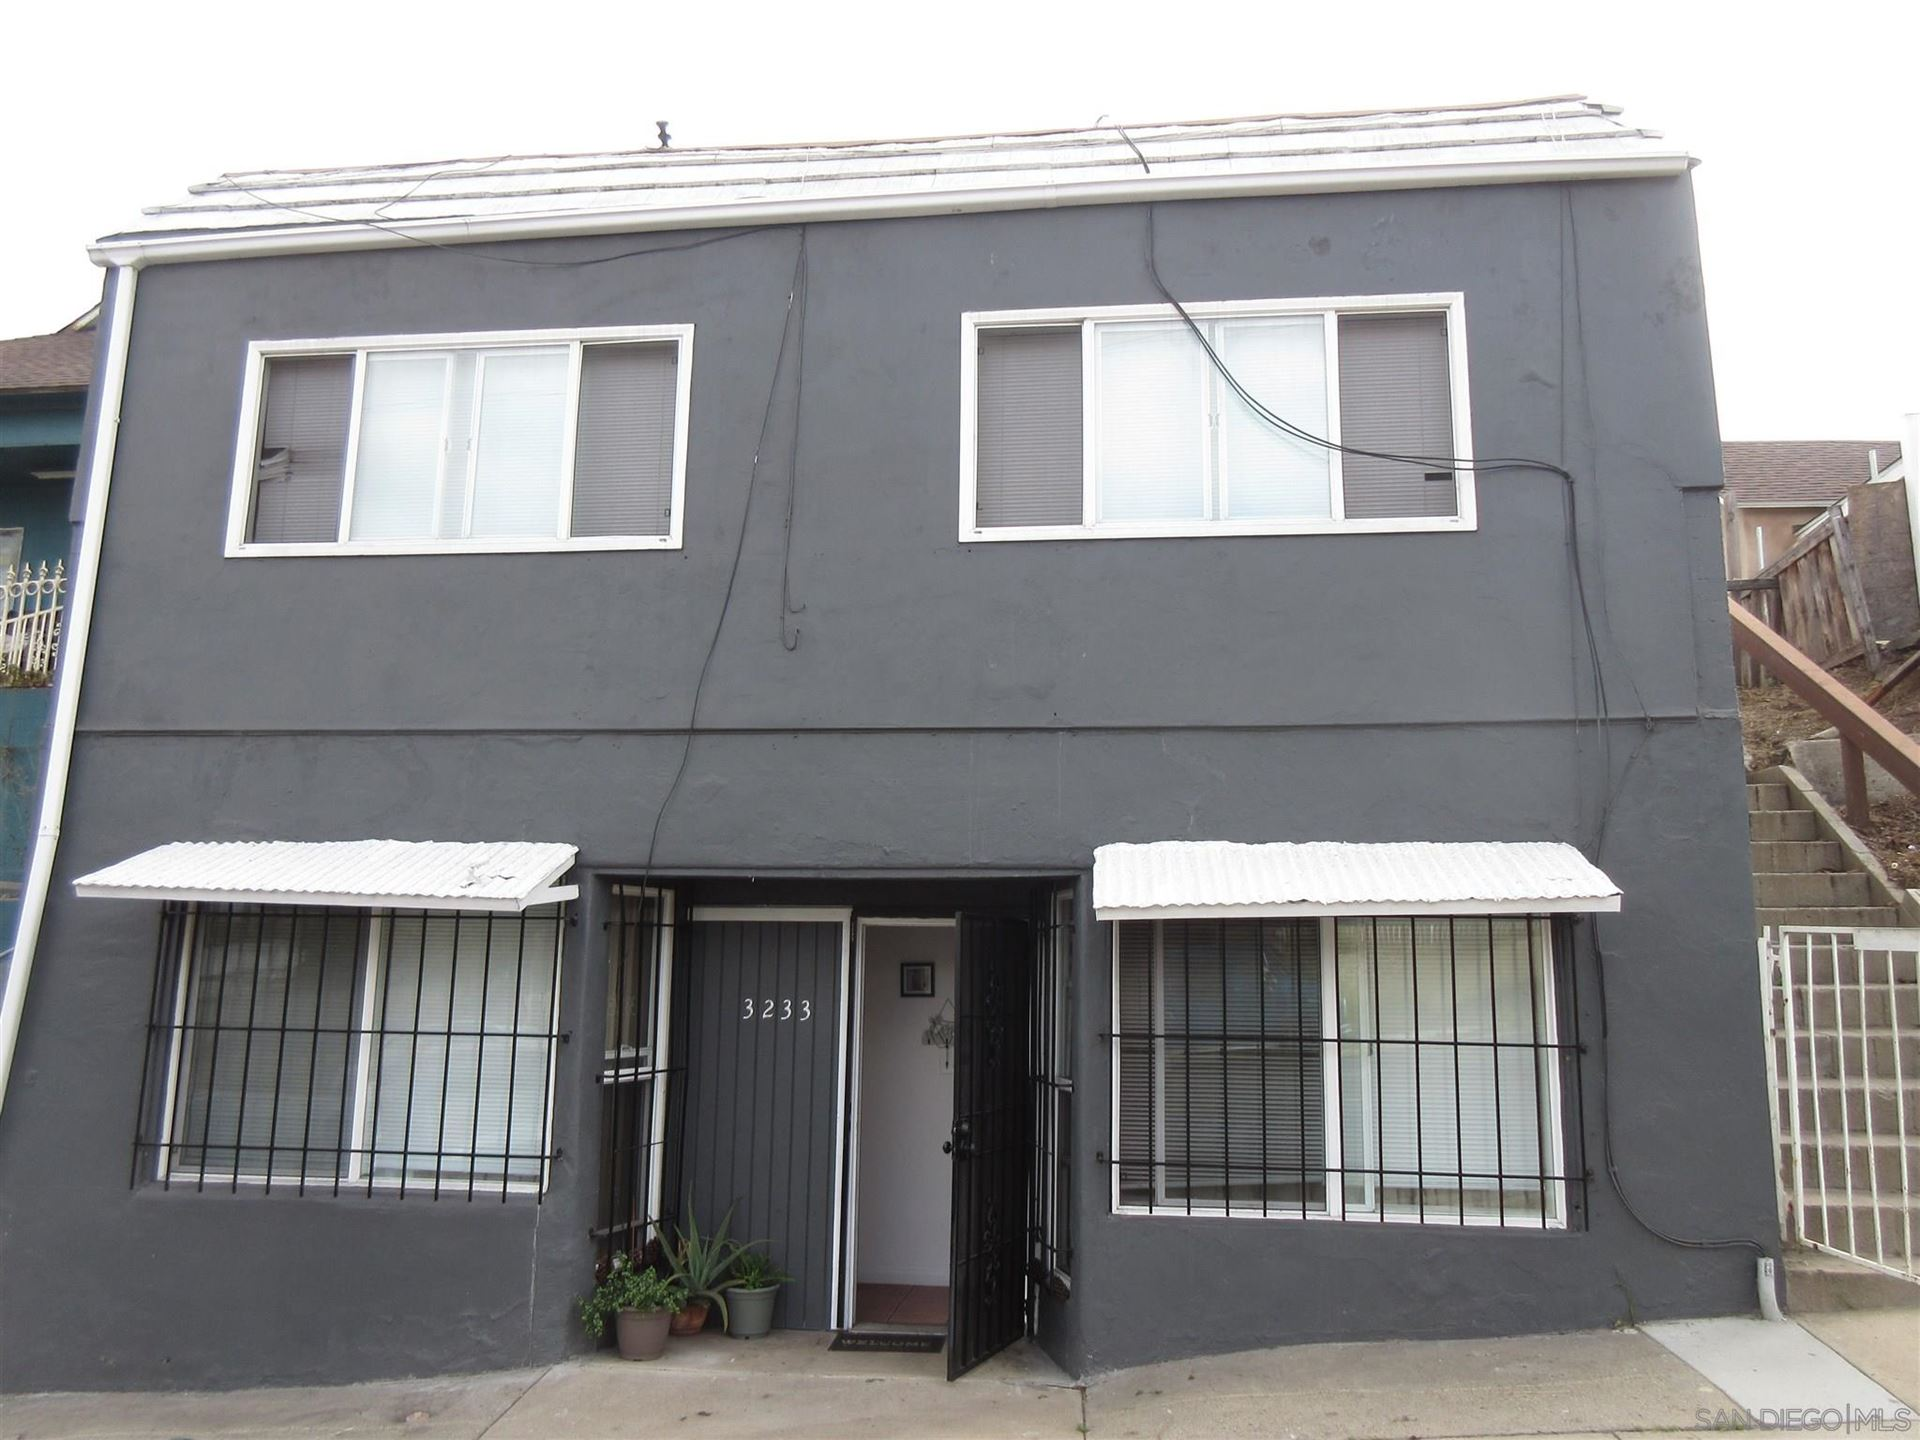 Photo of 3231-3233 National Ave, San Diego, CA 92113 (MLS # 210008683)